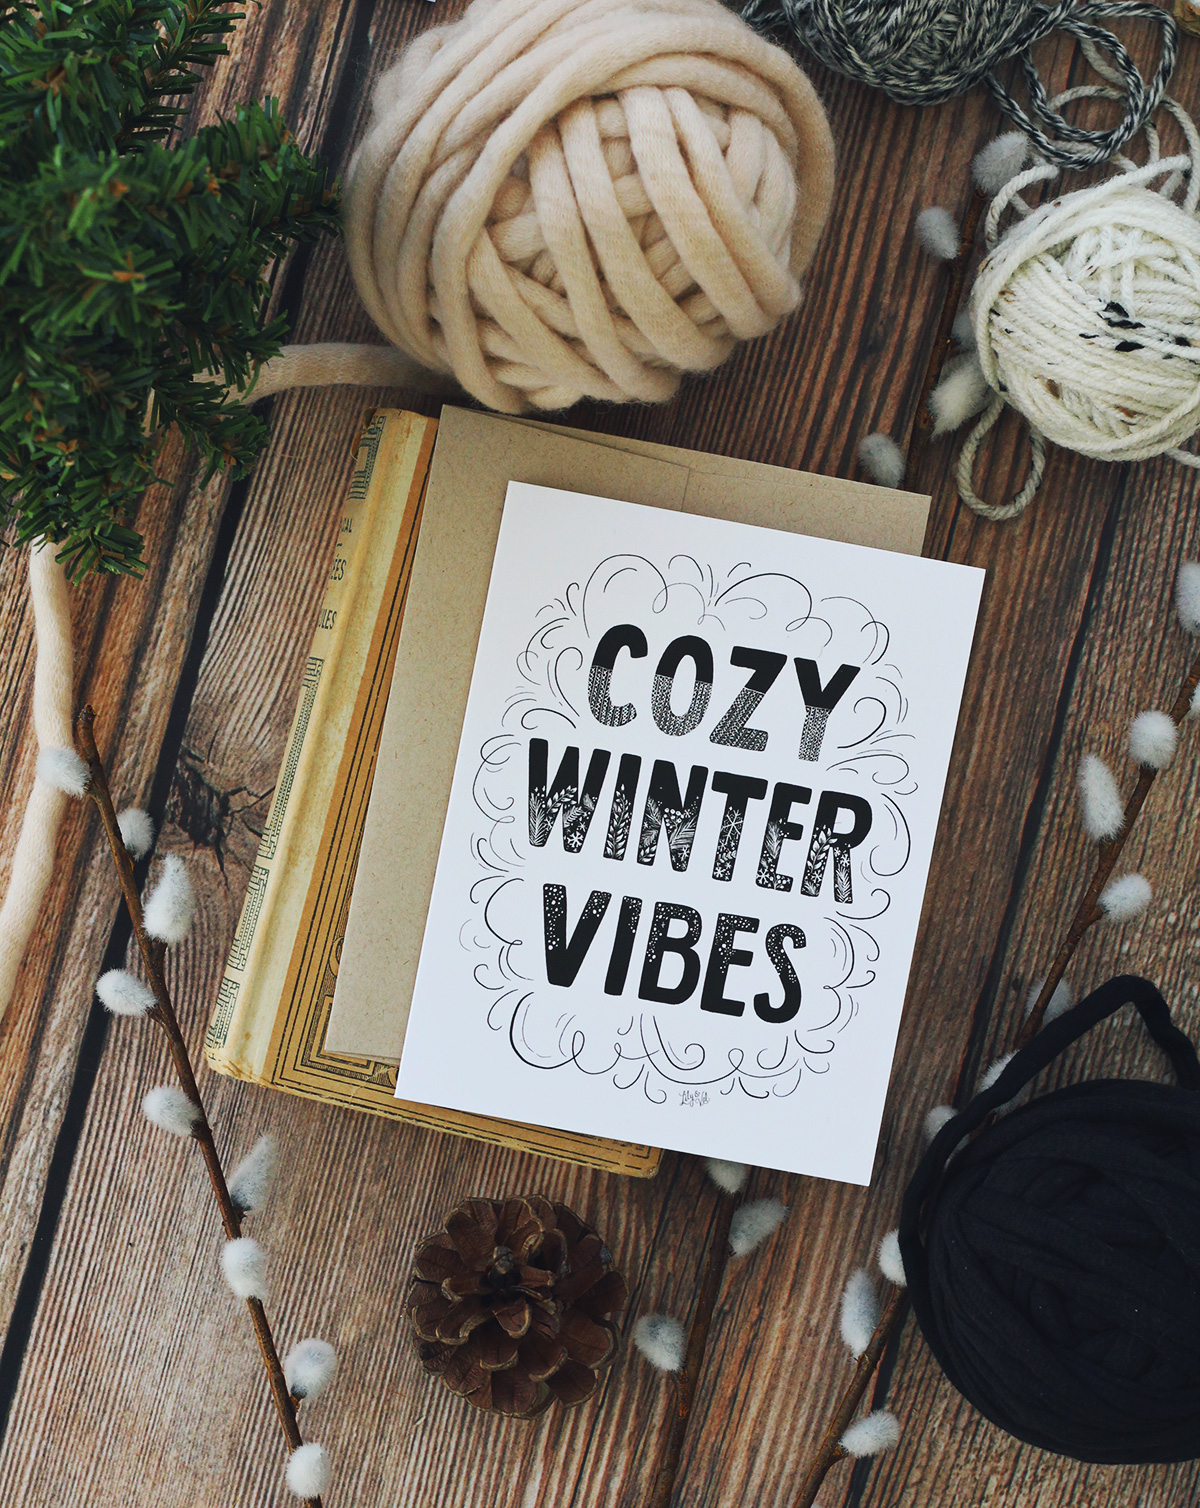 Cozy Winter Vibes is the perfect neutral black and white card to send a modern holiday greeting